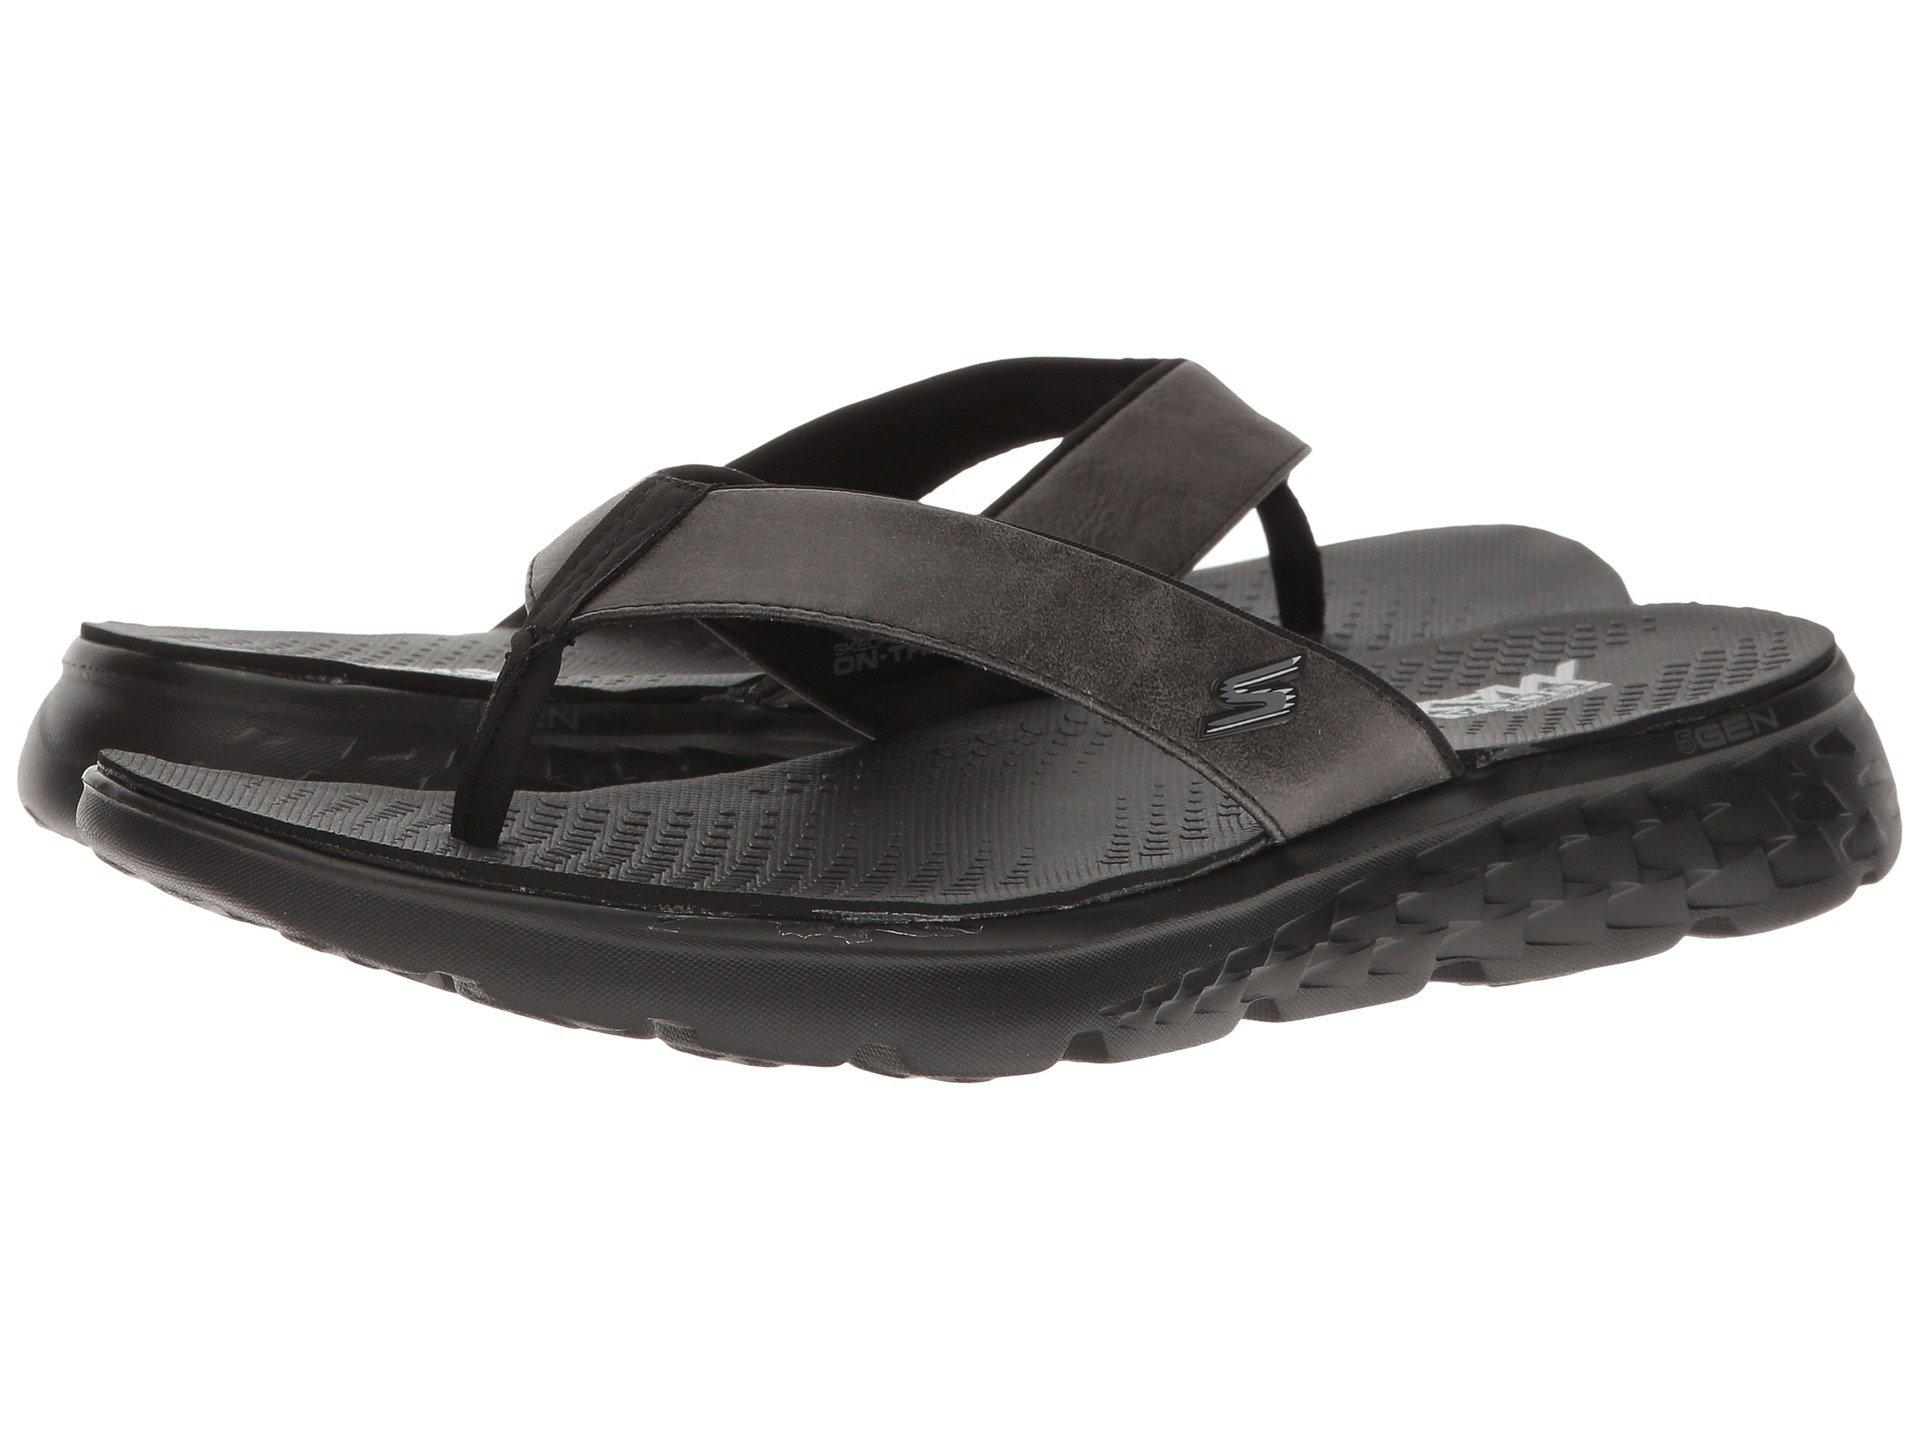 d3a6ba46432e Lyst - Skechers On-the-go 400 (black) Men s Sandals in Black for Men